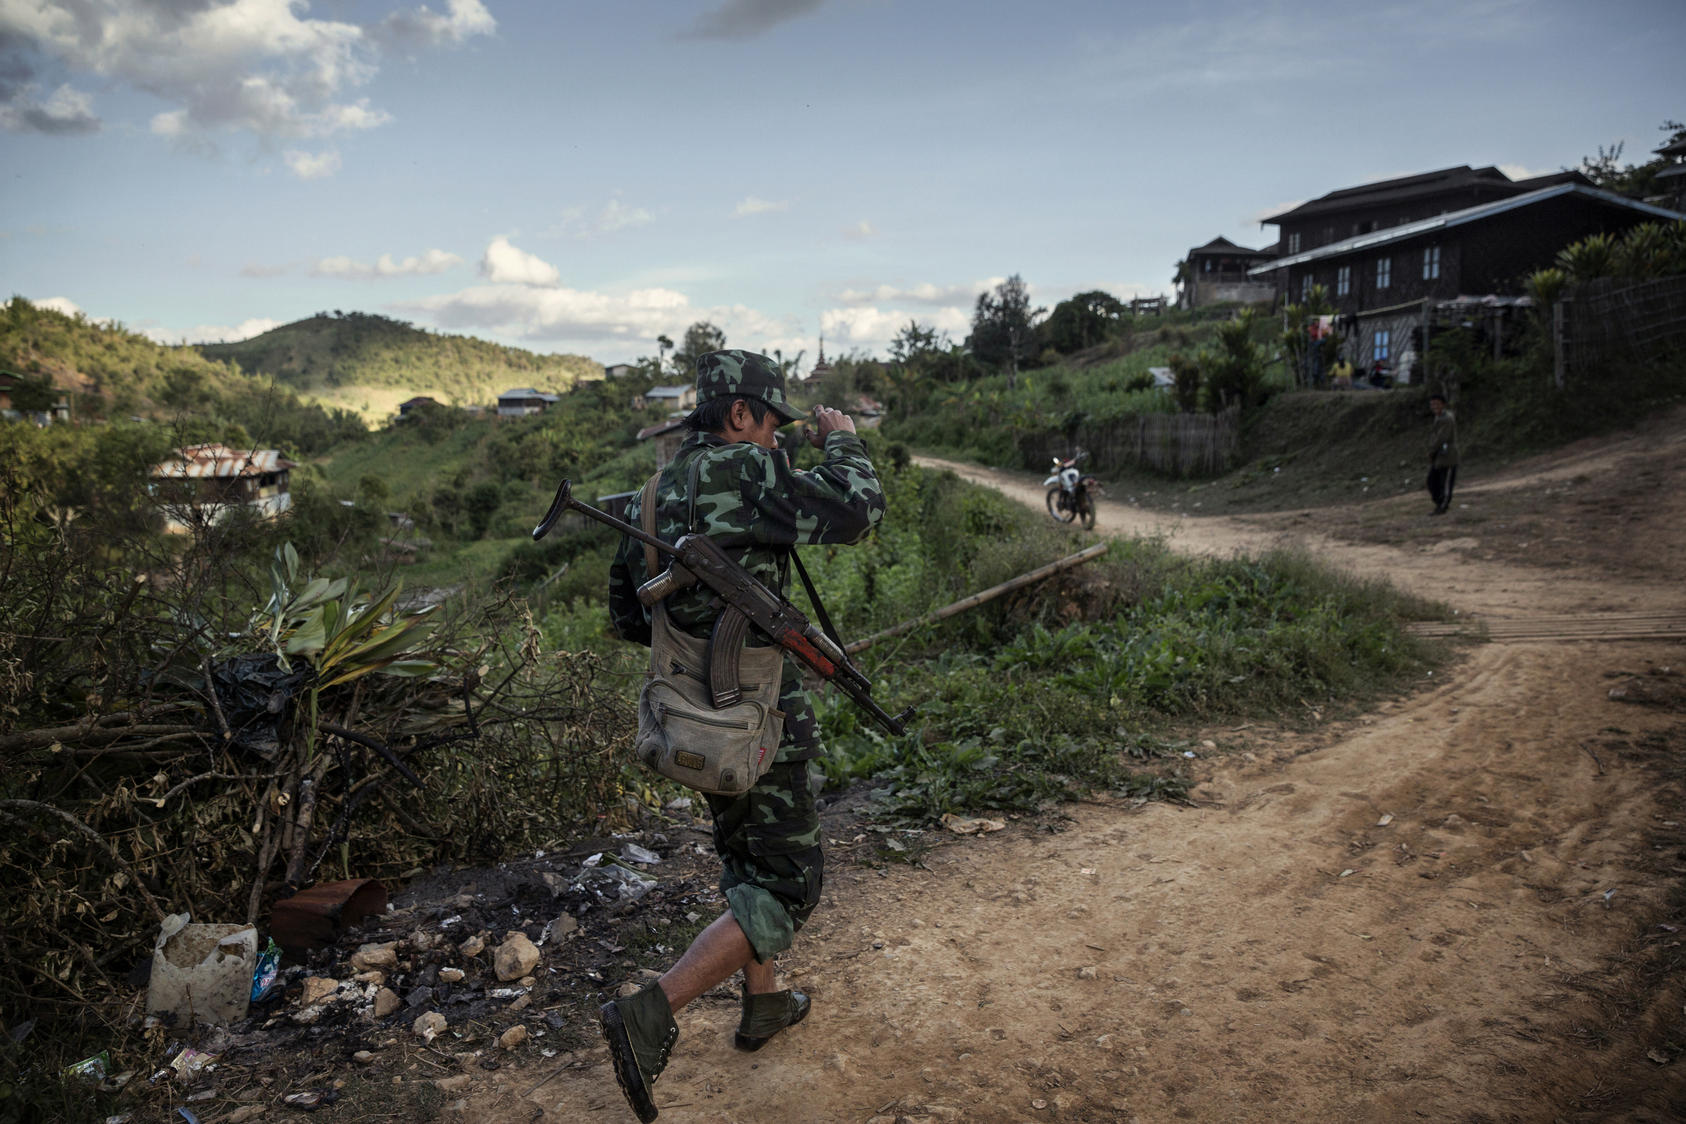 A Shan State Army - South rebel soldier walks through Bang Laem Village, Shan State, Myanmar, an area where poppy farming has flourished, Dec. 7, 2014. Growing opium poppies is illegal in Myanmar, but small-scale farmers see it is a relatively low-risk cash crop.